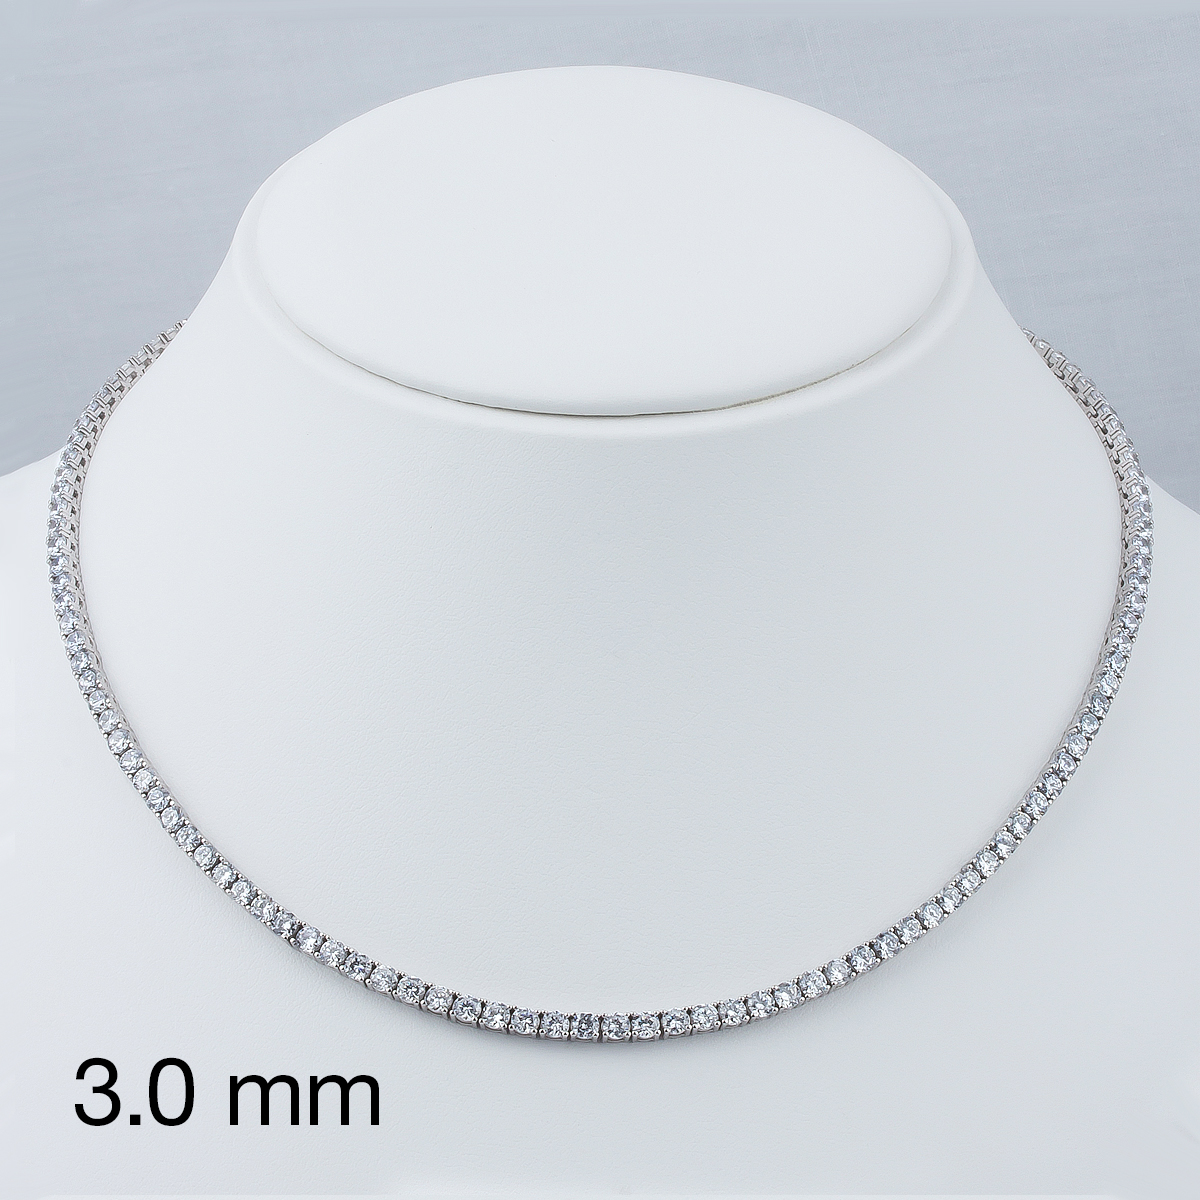 Classic Round Cubic Zirconia Eternity Tennis Necklace with 3.0mm Stones